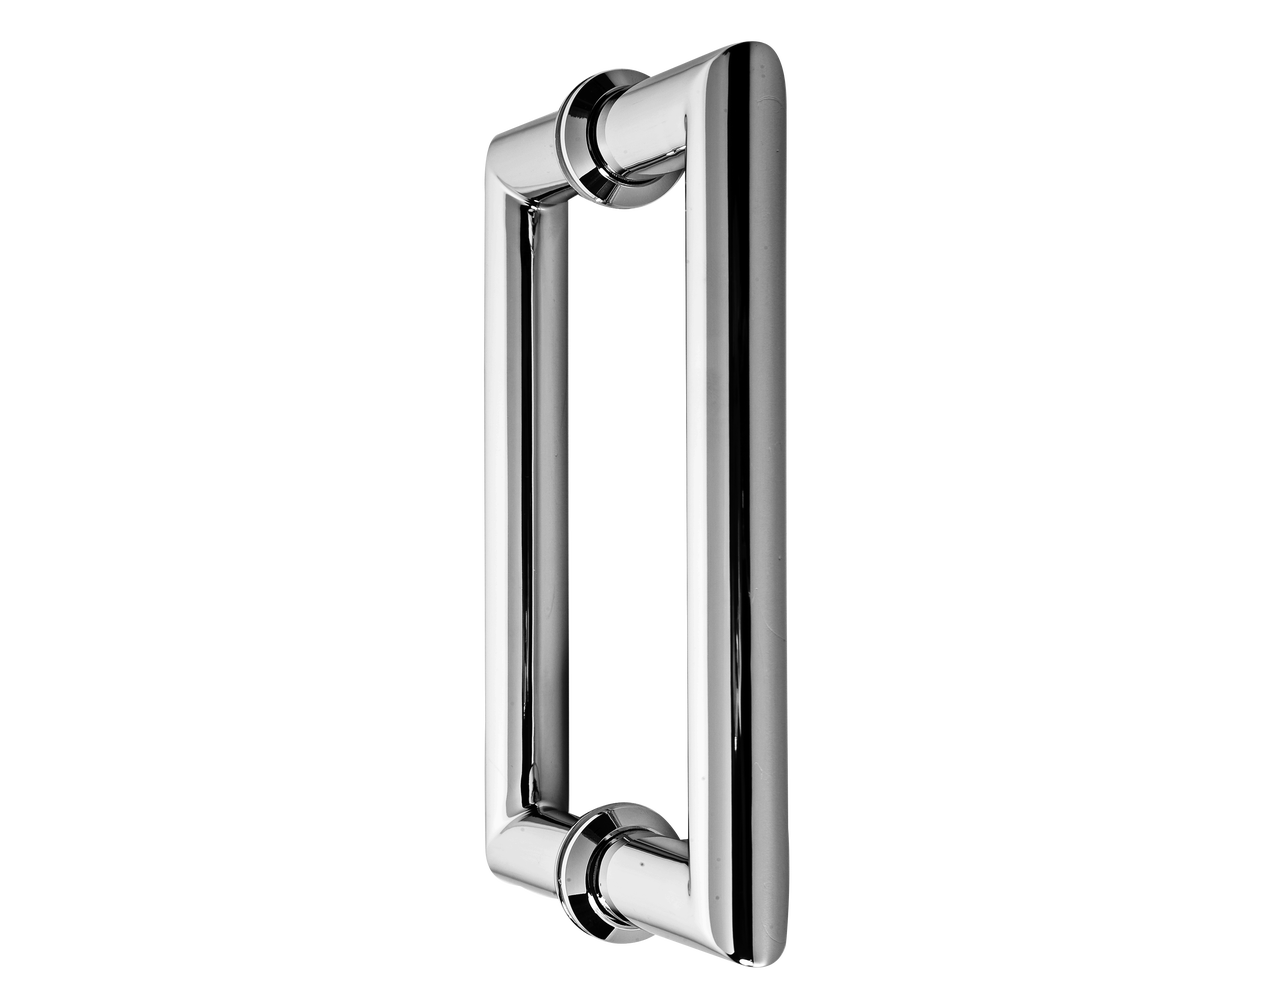 Door handle png. H x mtbn mitered